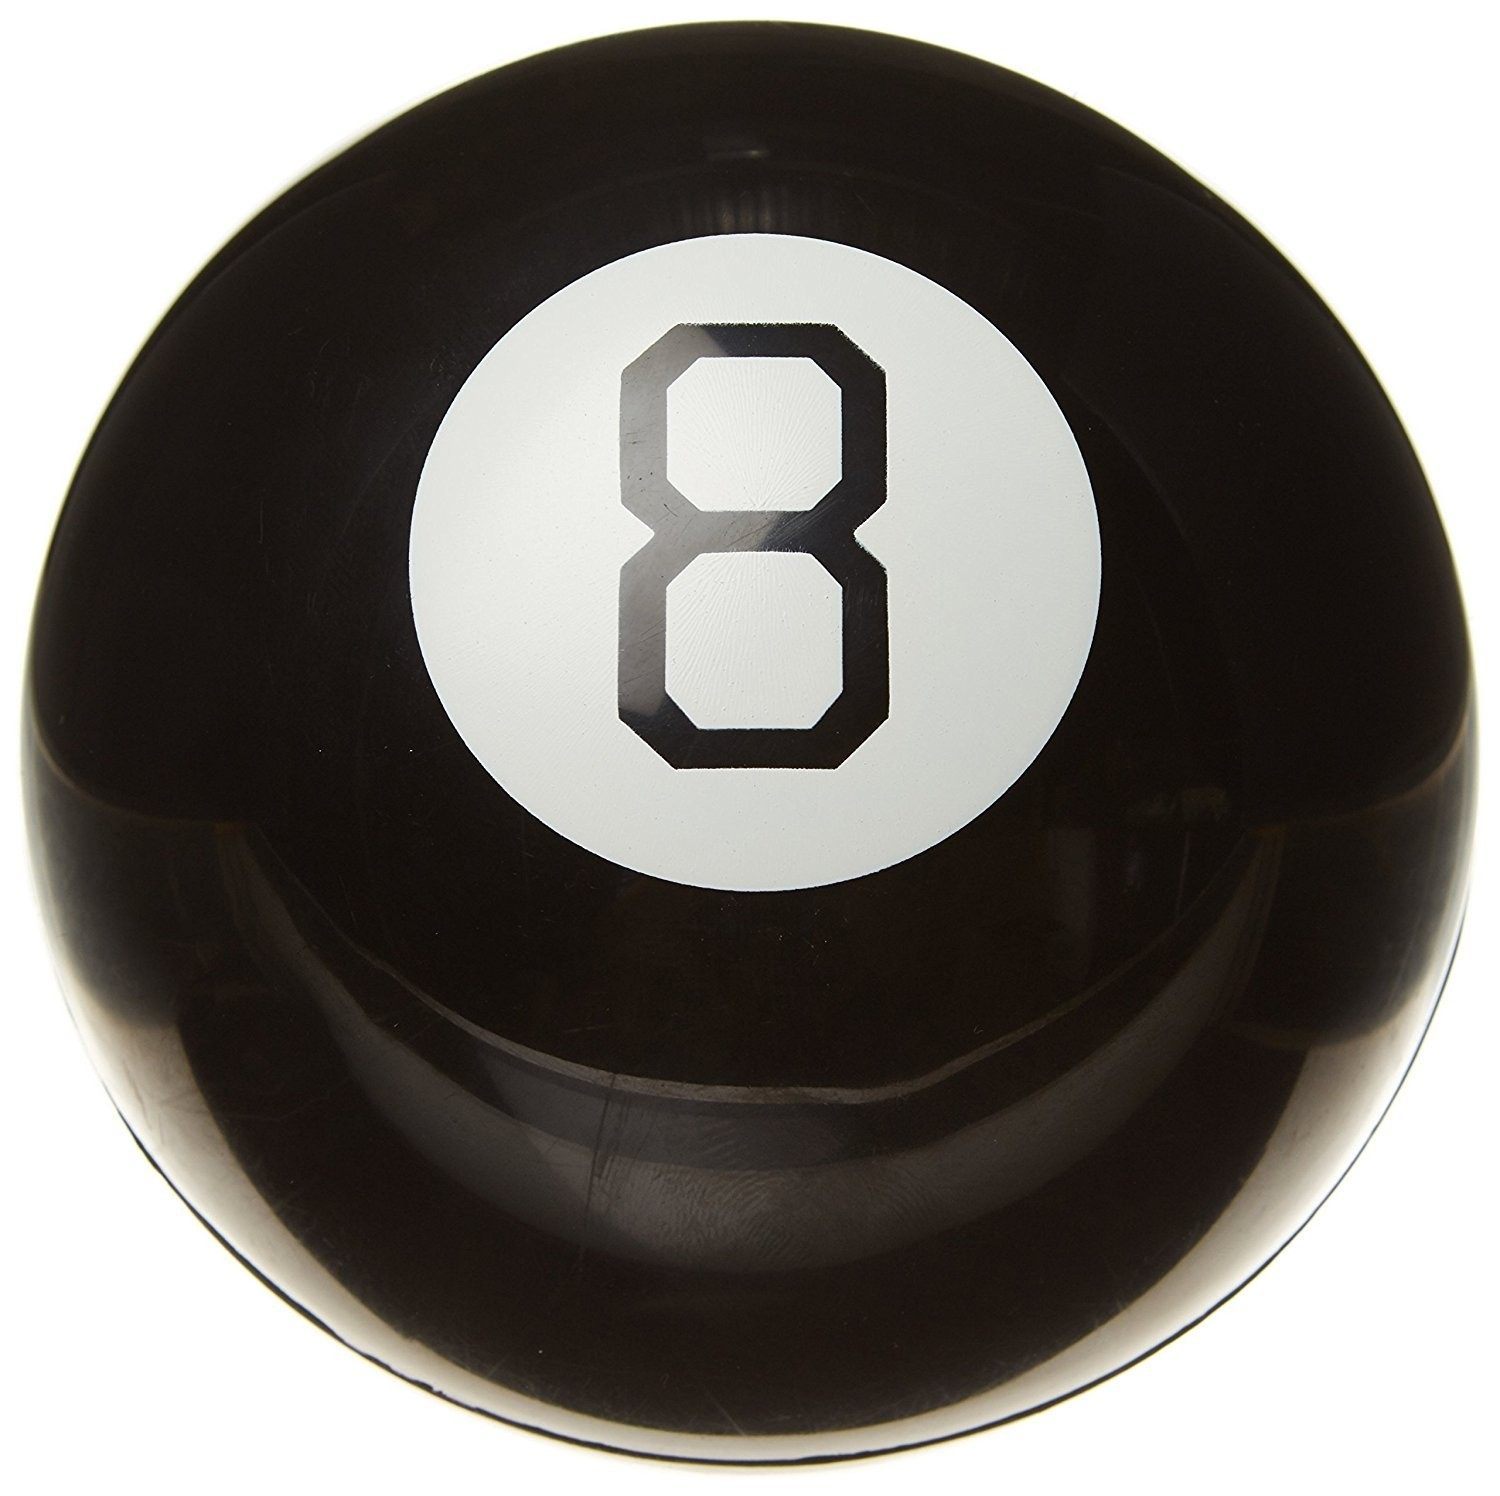 Magic Mystic 8 Ball - Simply ask a question and the 8 ball answers d73fb3fe8d92